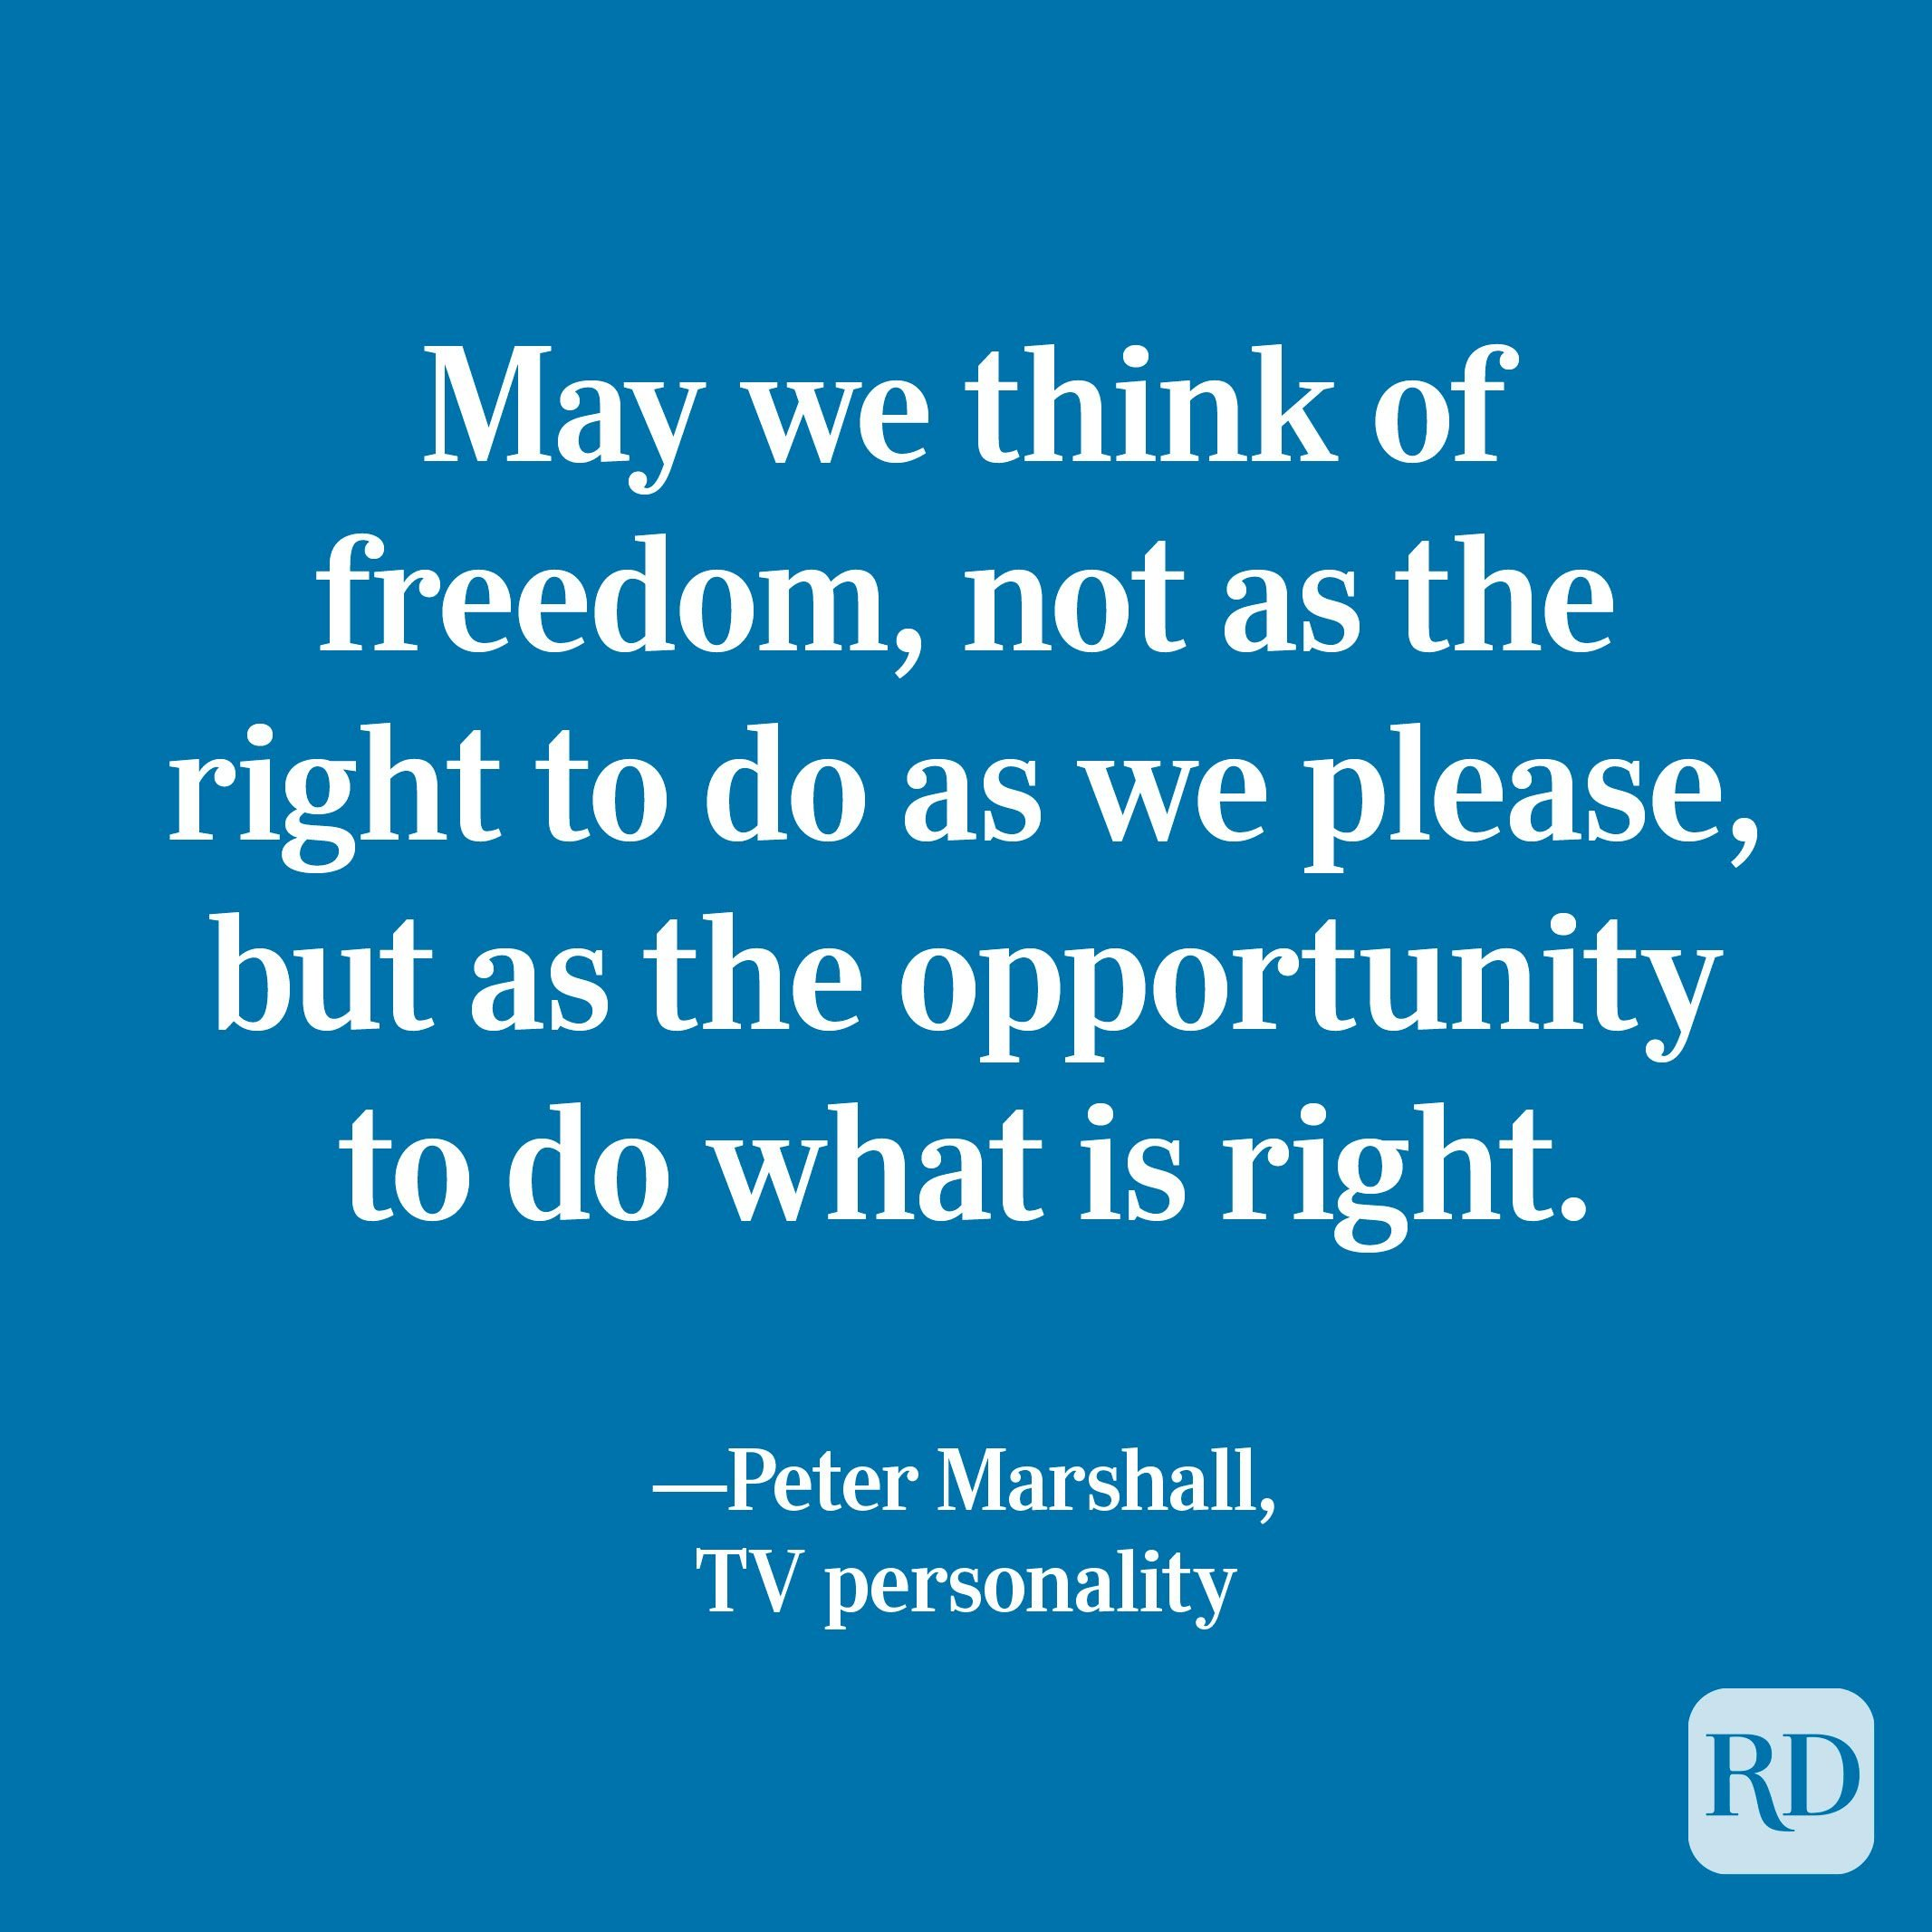 """""""May we think of freedom, not as the right to do as we please, but as the opportunity to do what is right."""" —Peter Marshall, TV personality"""